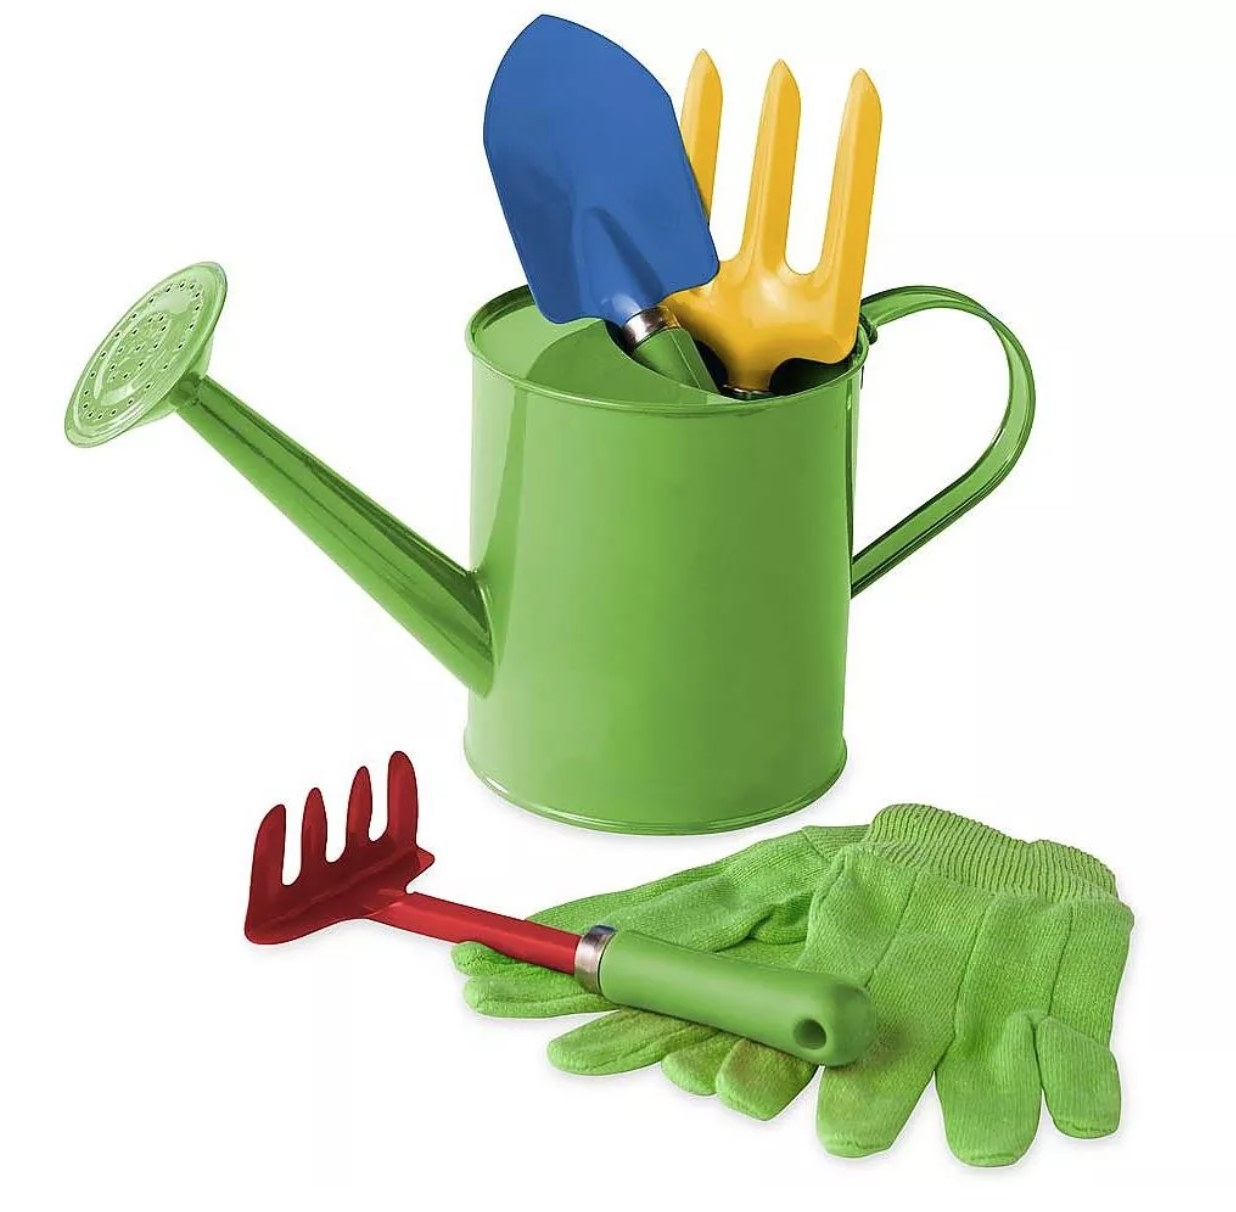 Green gardening toolset with a trowel, fork, hand rake, gloves, and watering can